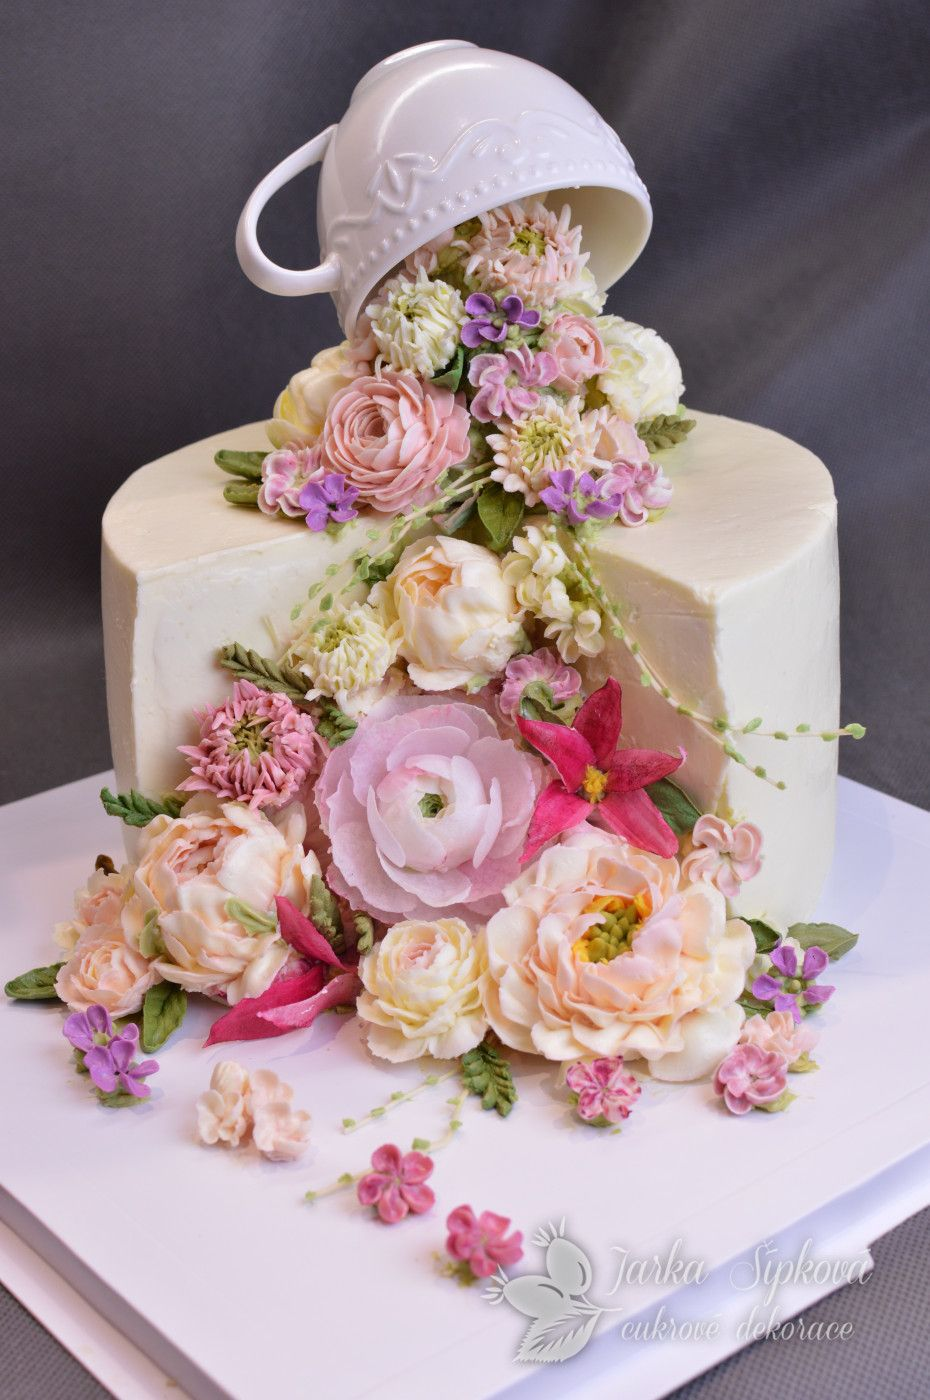 Buttercream flowers and wafer paper